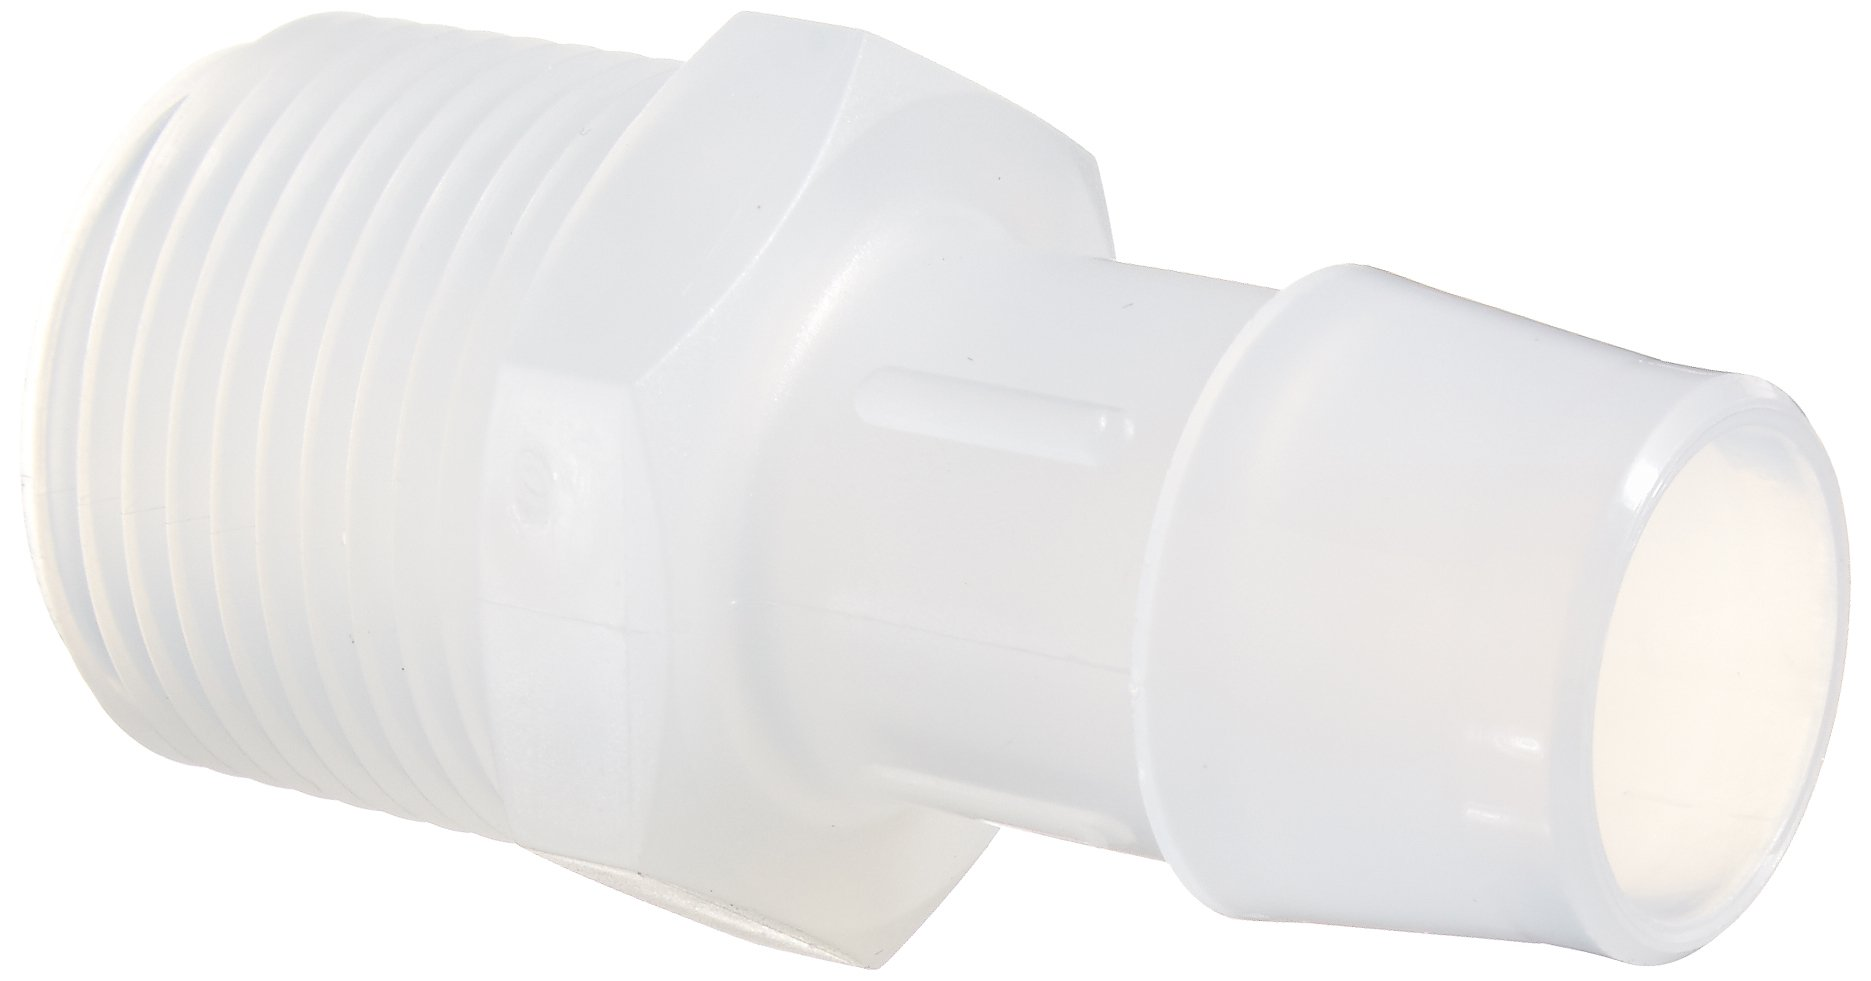 Eldon James A12-12PP Non-Animal Derived Polypropylene Adapter Fitting, 3/4-14 NPT to 3/4'' Hose Barb (Pack of 10)